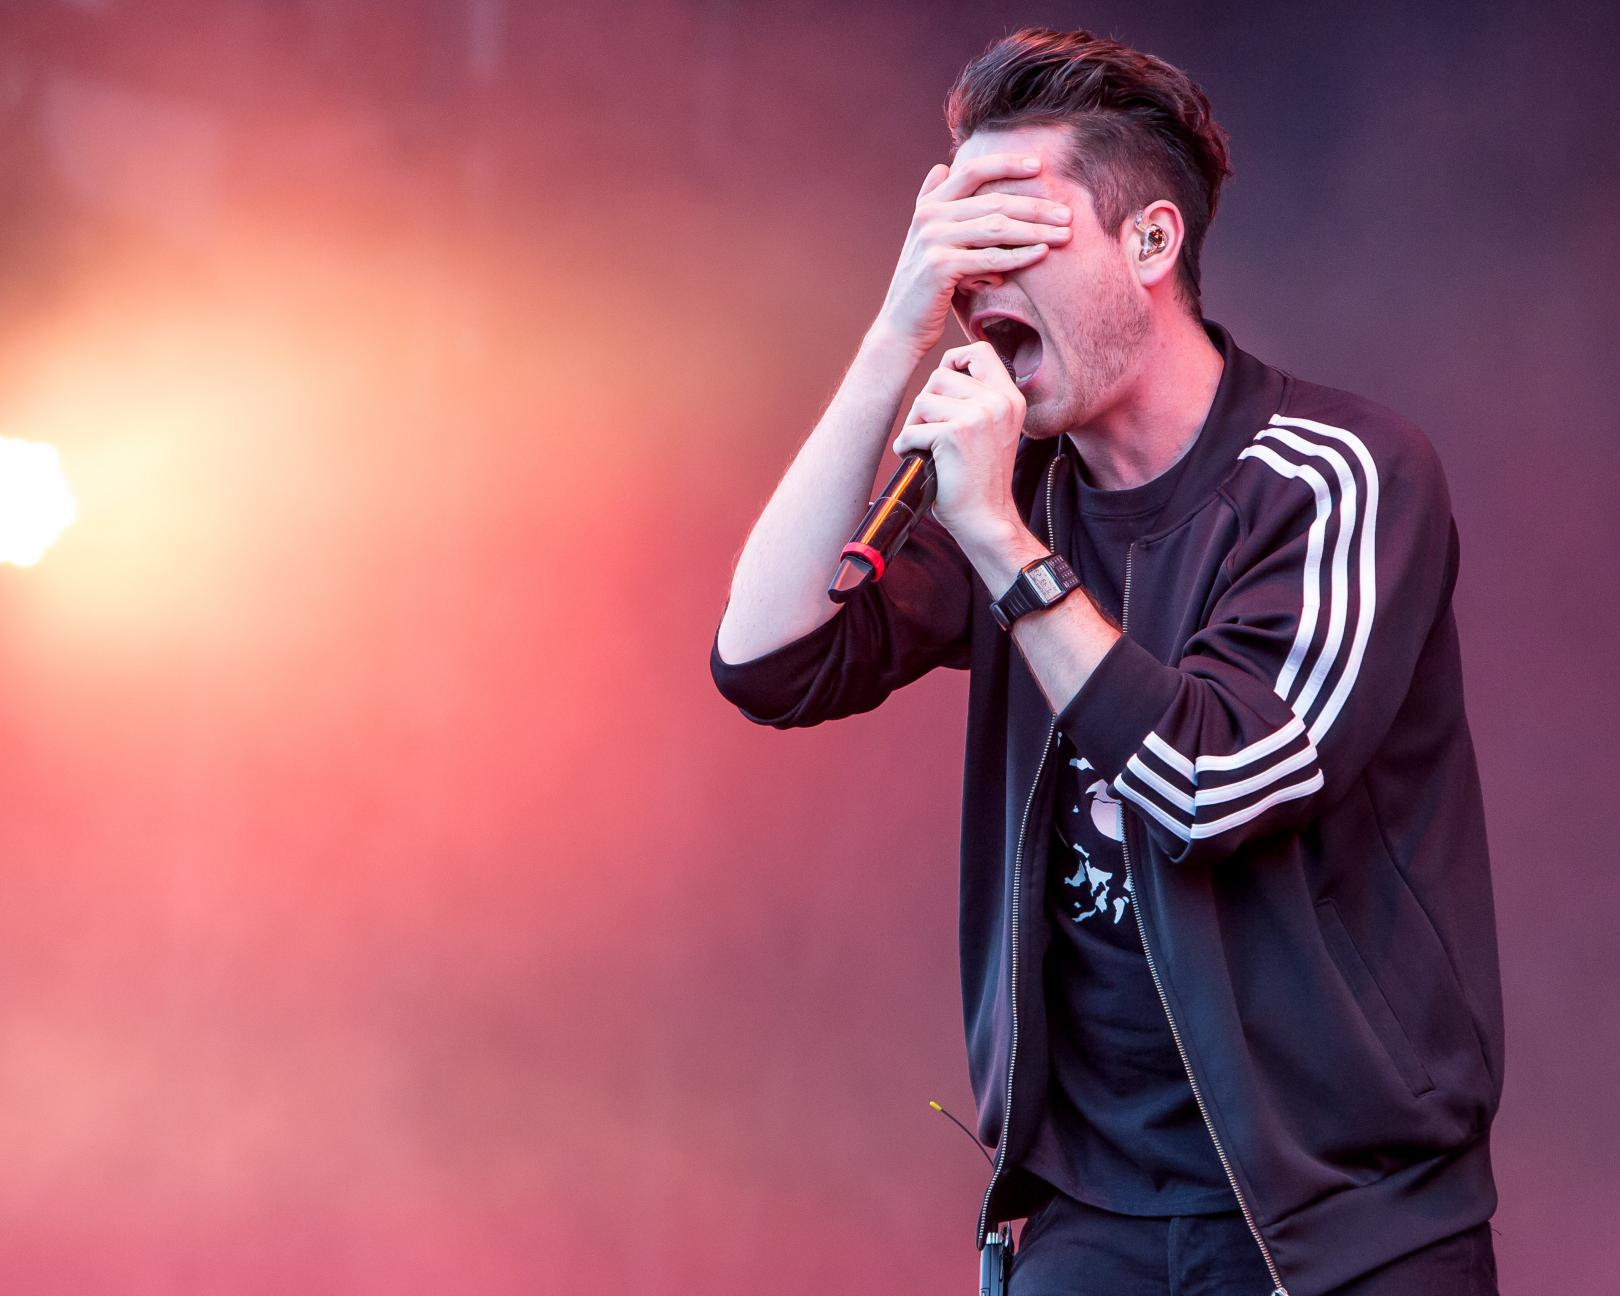 Isle of Wight Festival Music Photography